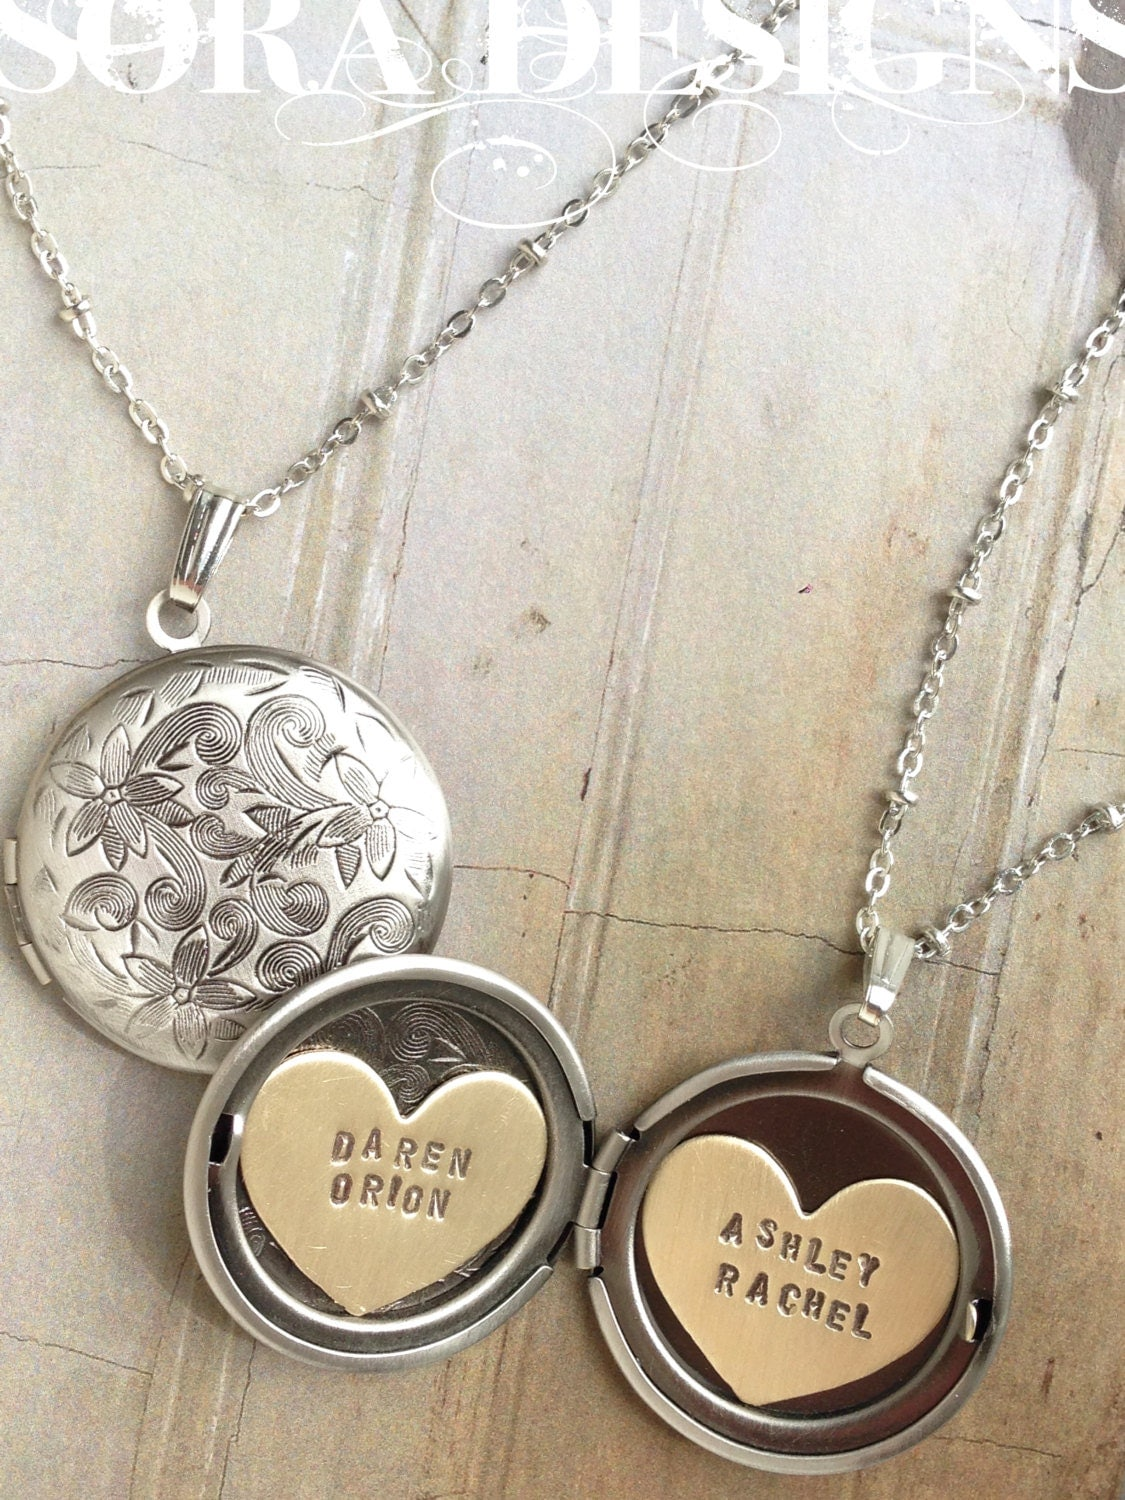 Personalized Celebrity Name Necklace Custom ... - ebay.com